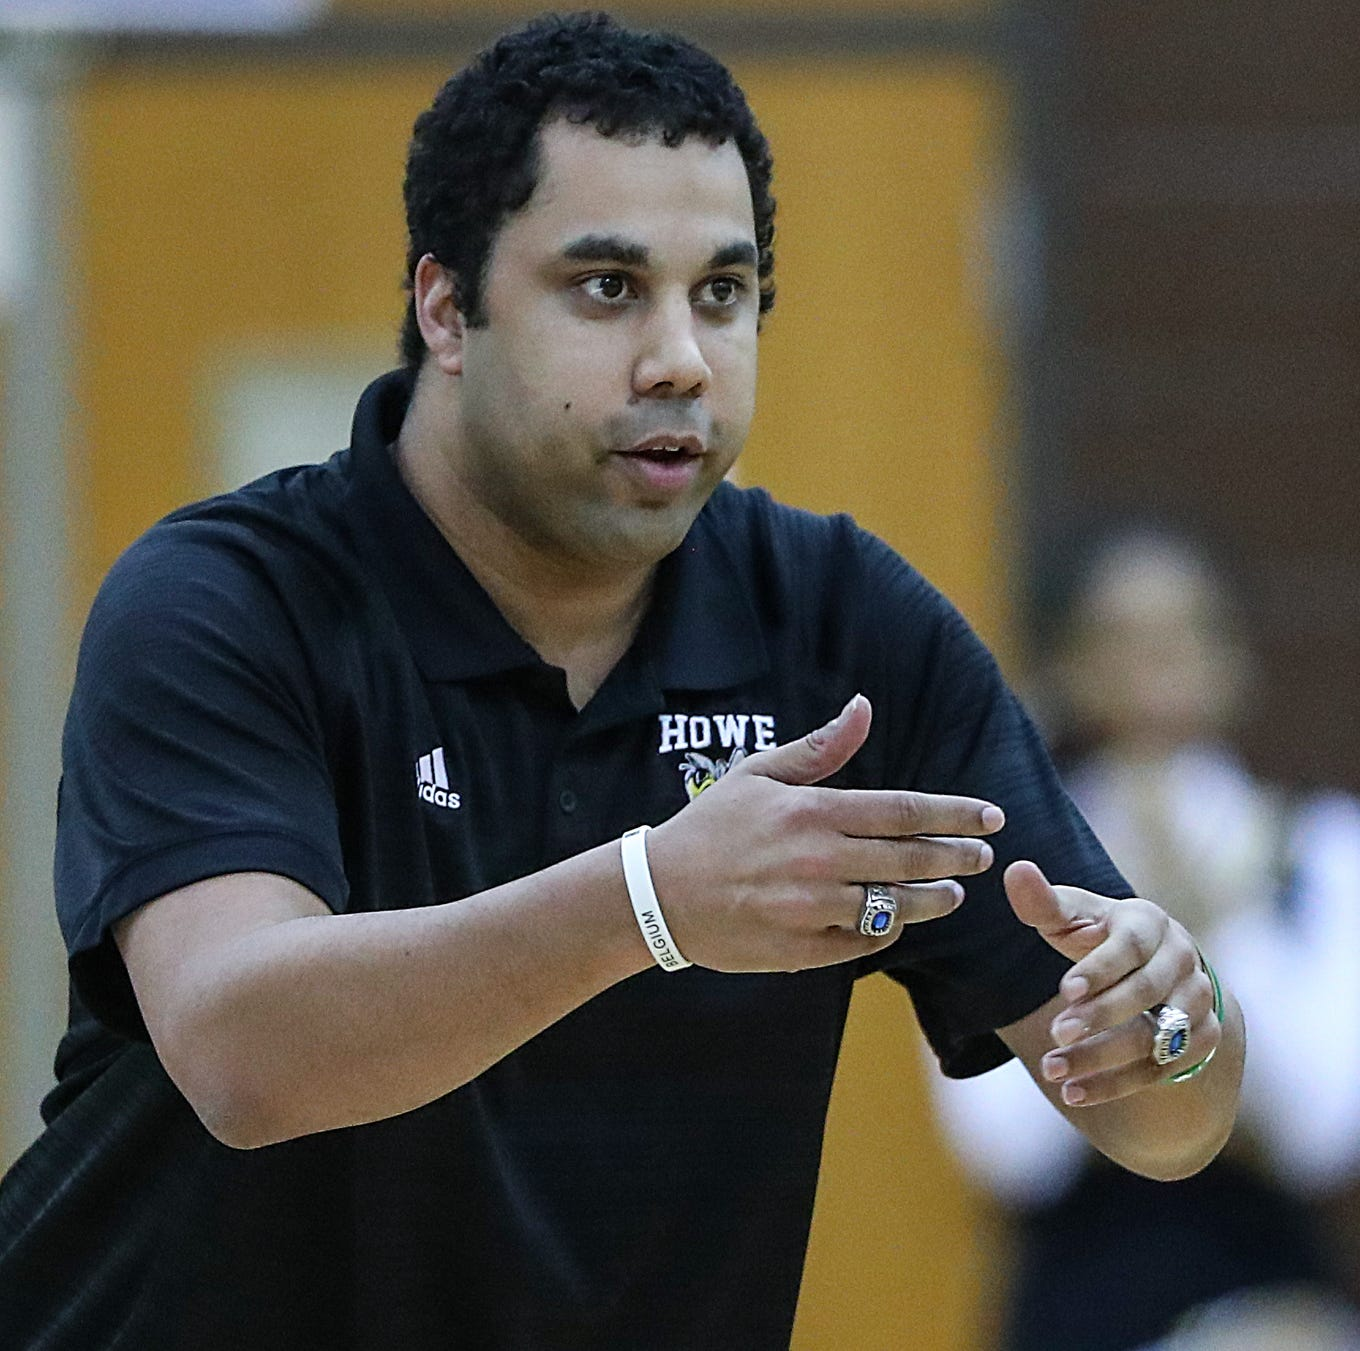 Kristof Kendrick is leaving Howe to replace Criss Beyers at Warren Central.